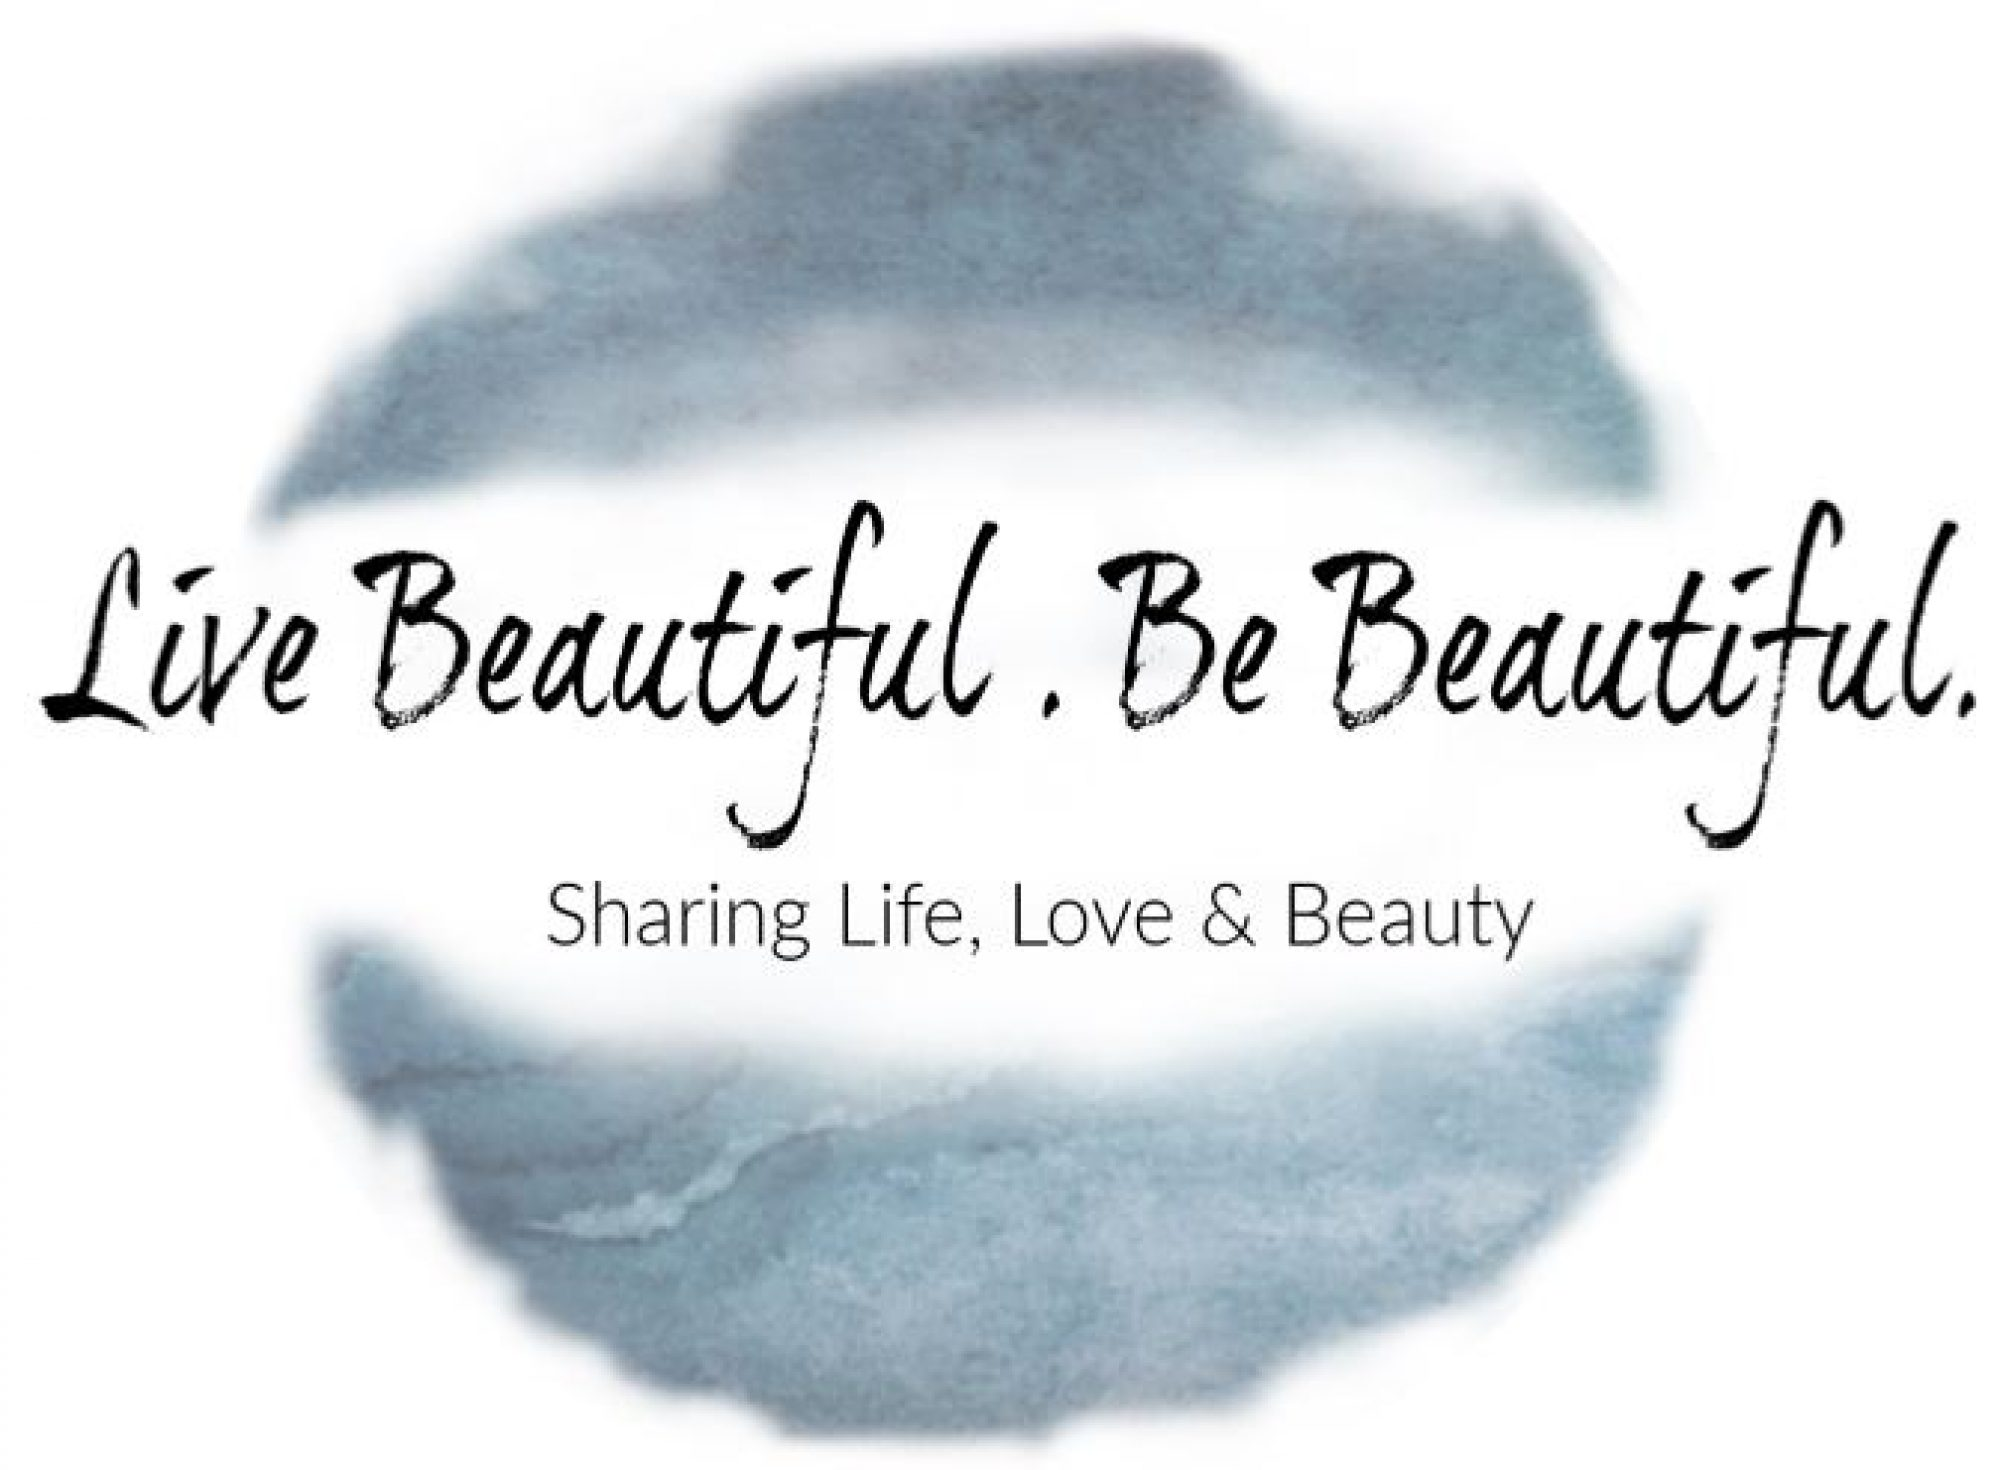 Live Beautiful. Be Beautiful.